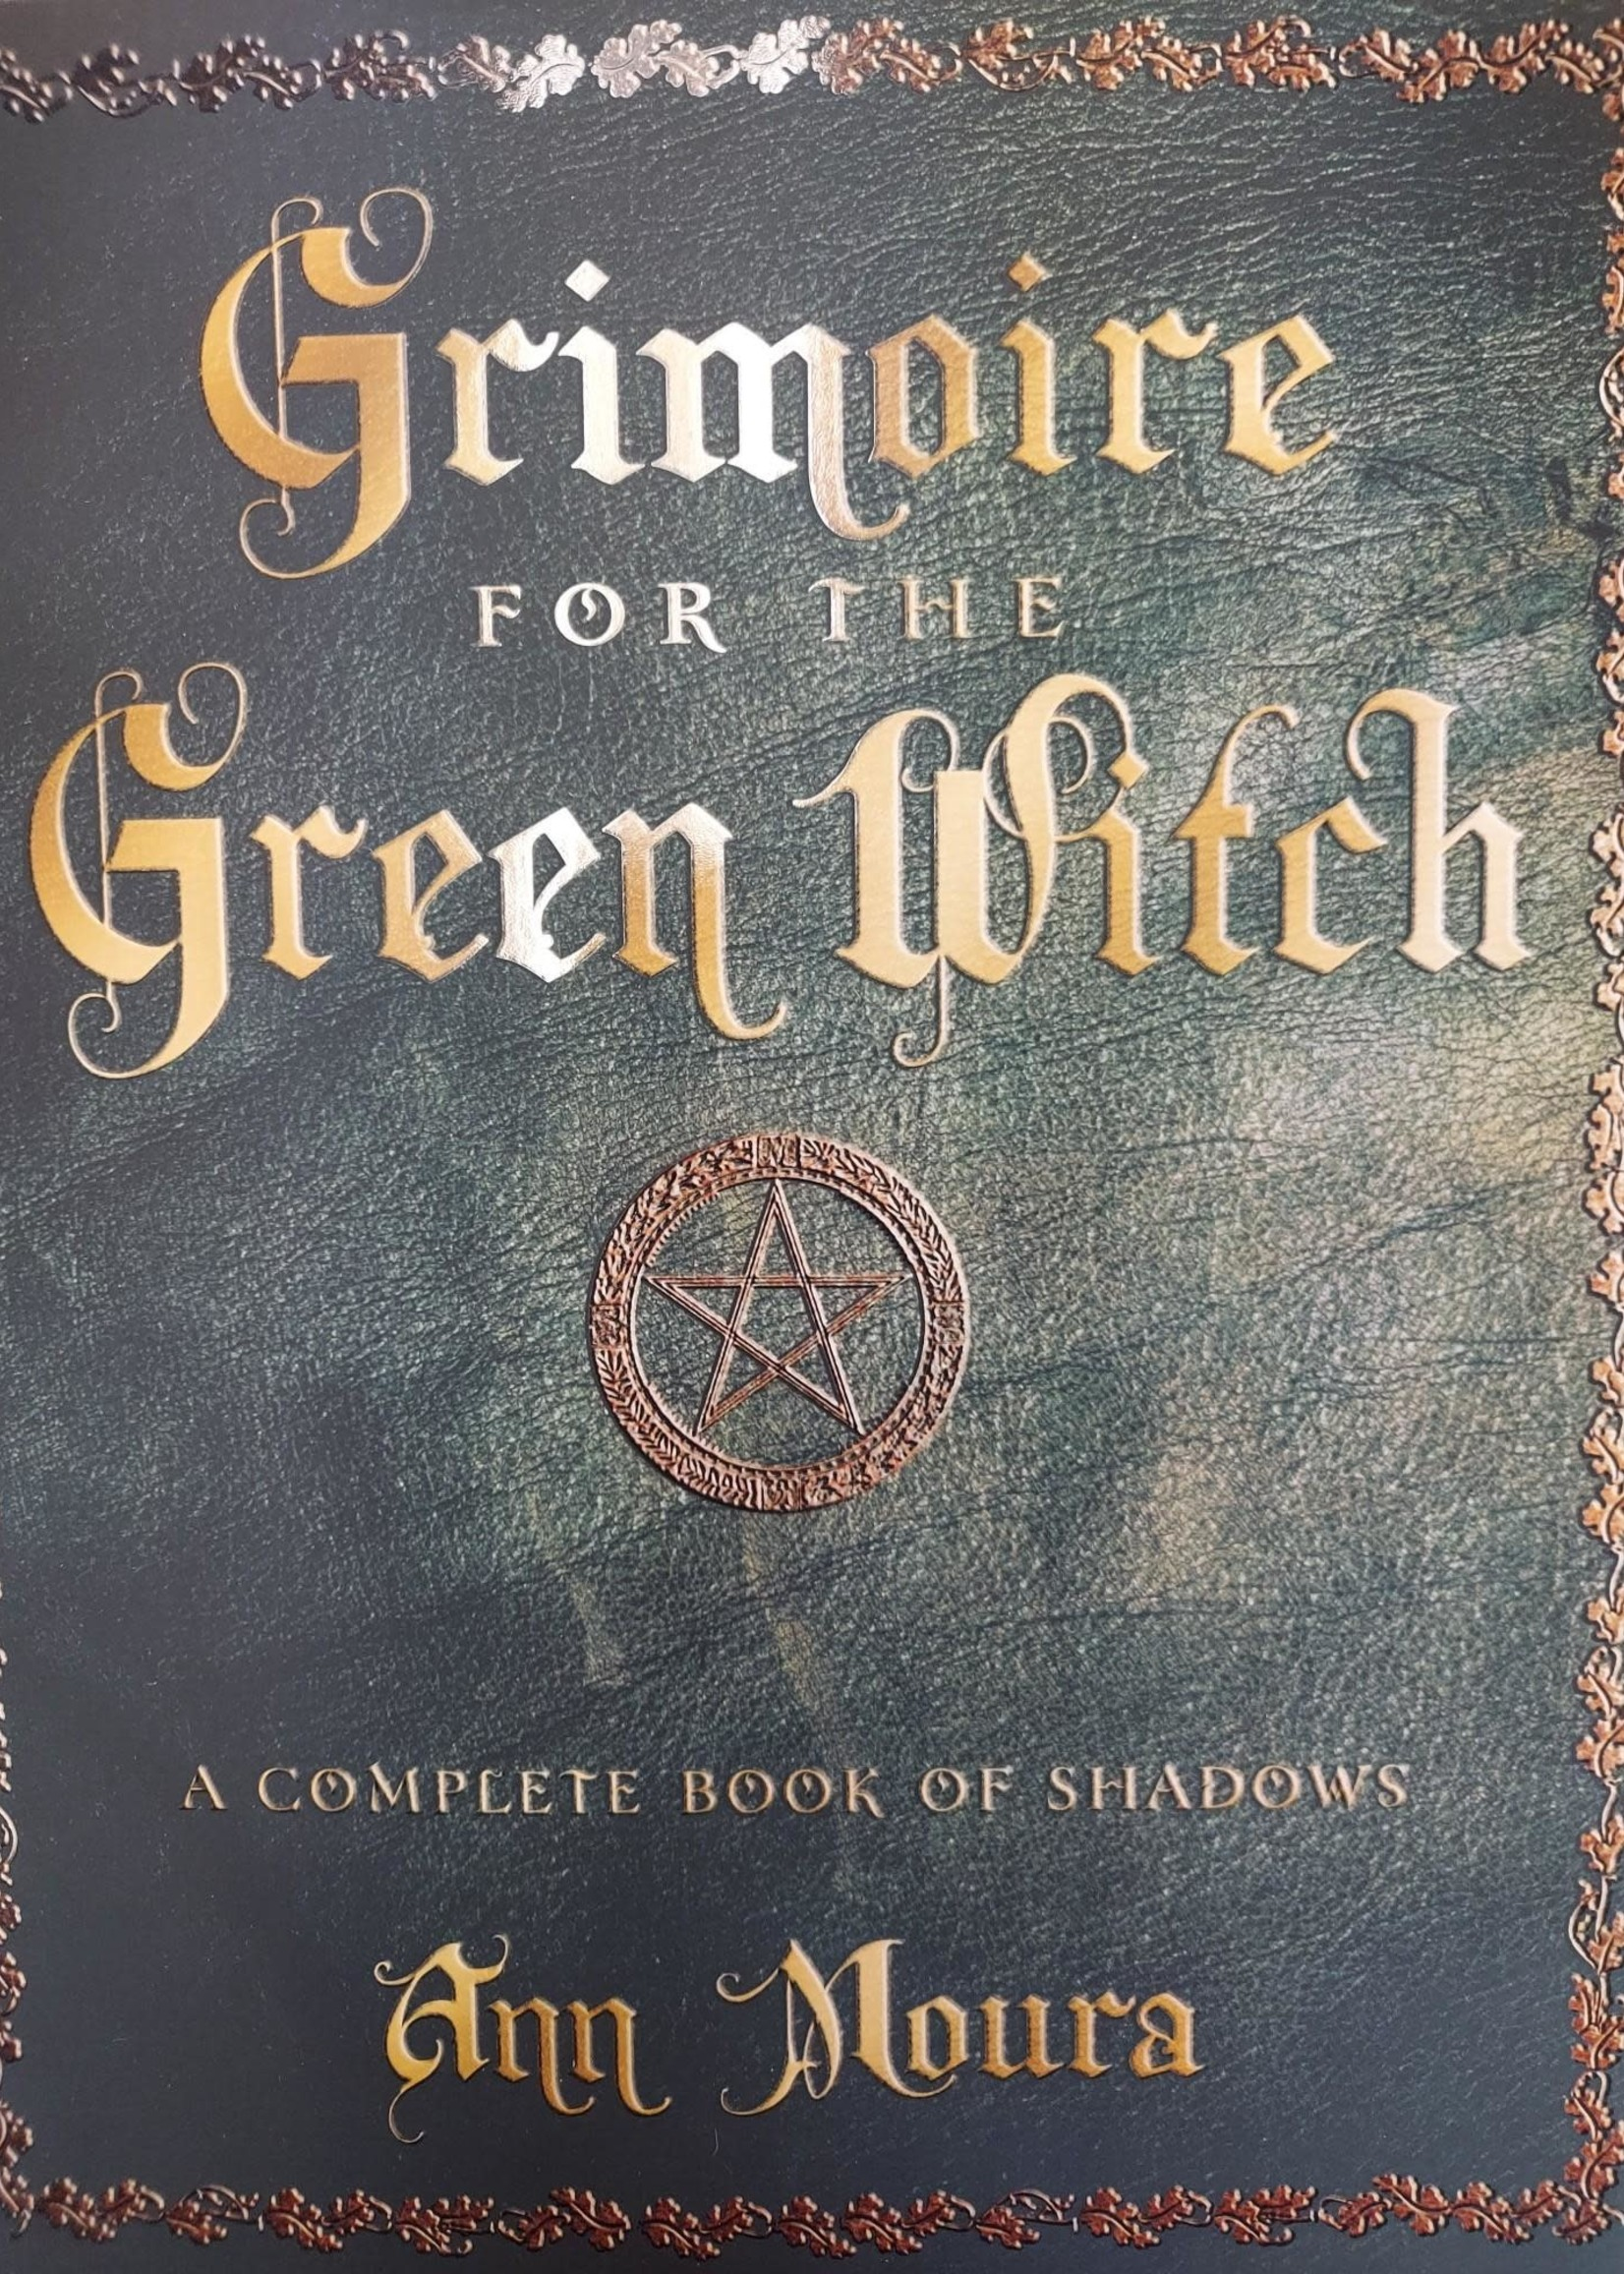 Grimoire for the Green Witch - BY ANN MOURA